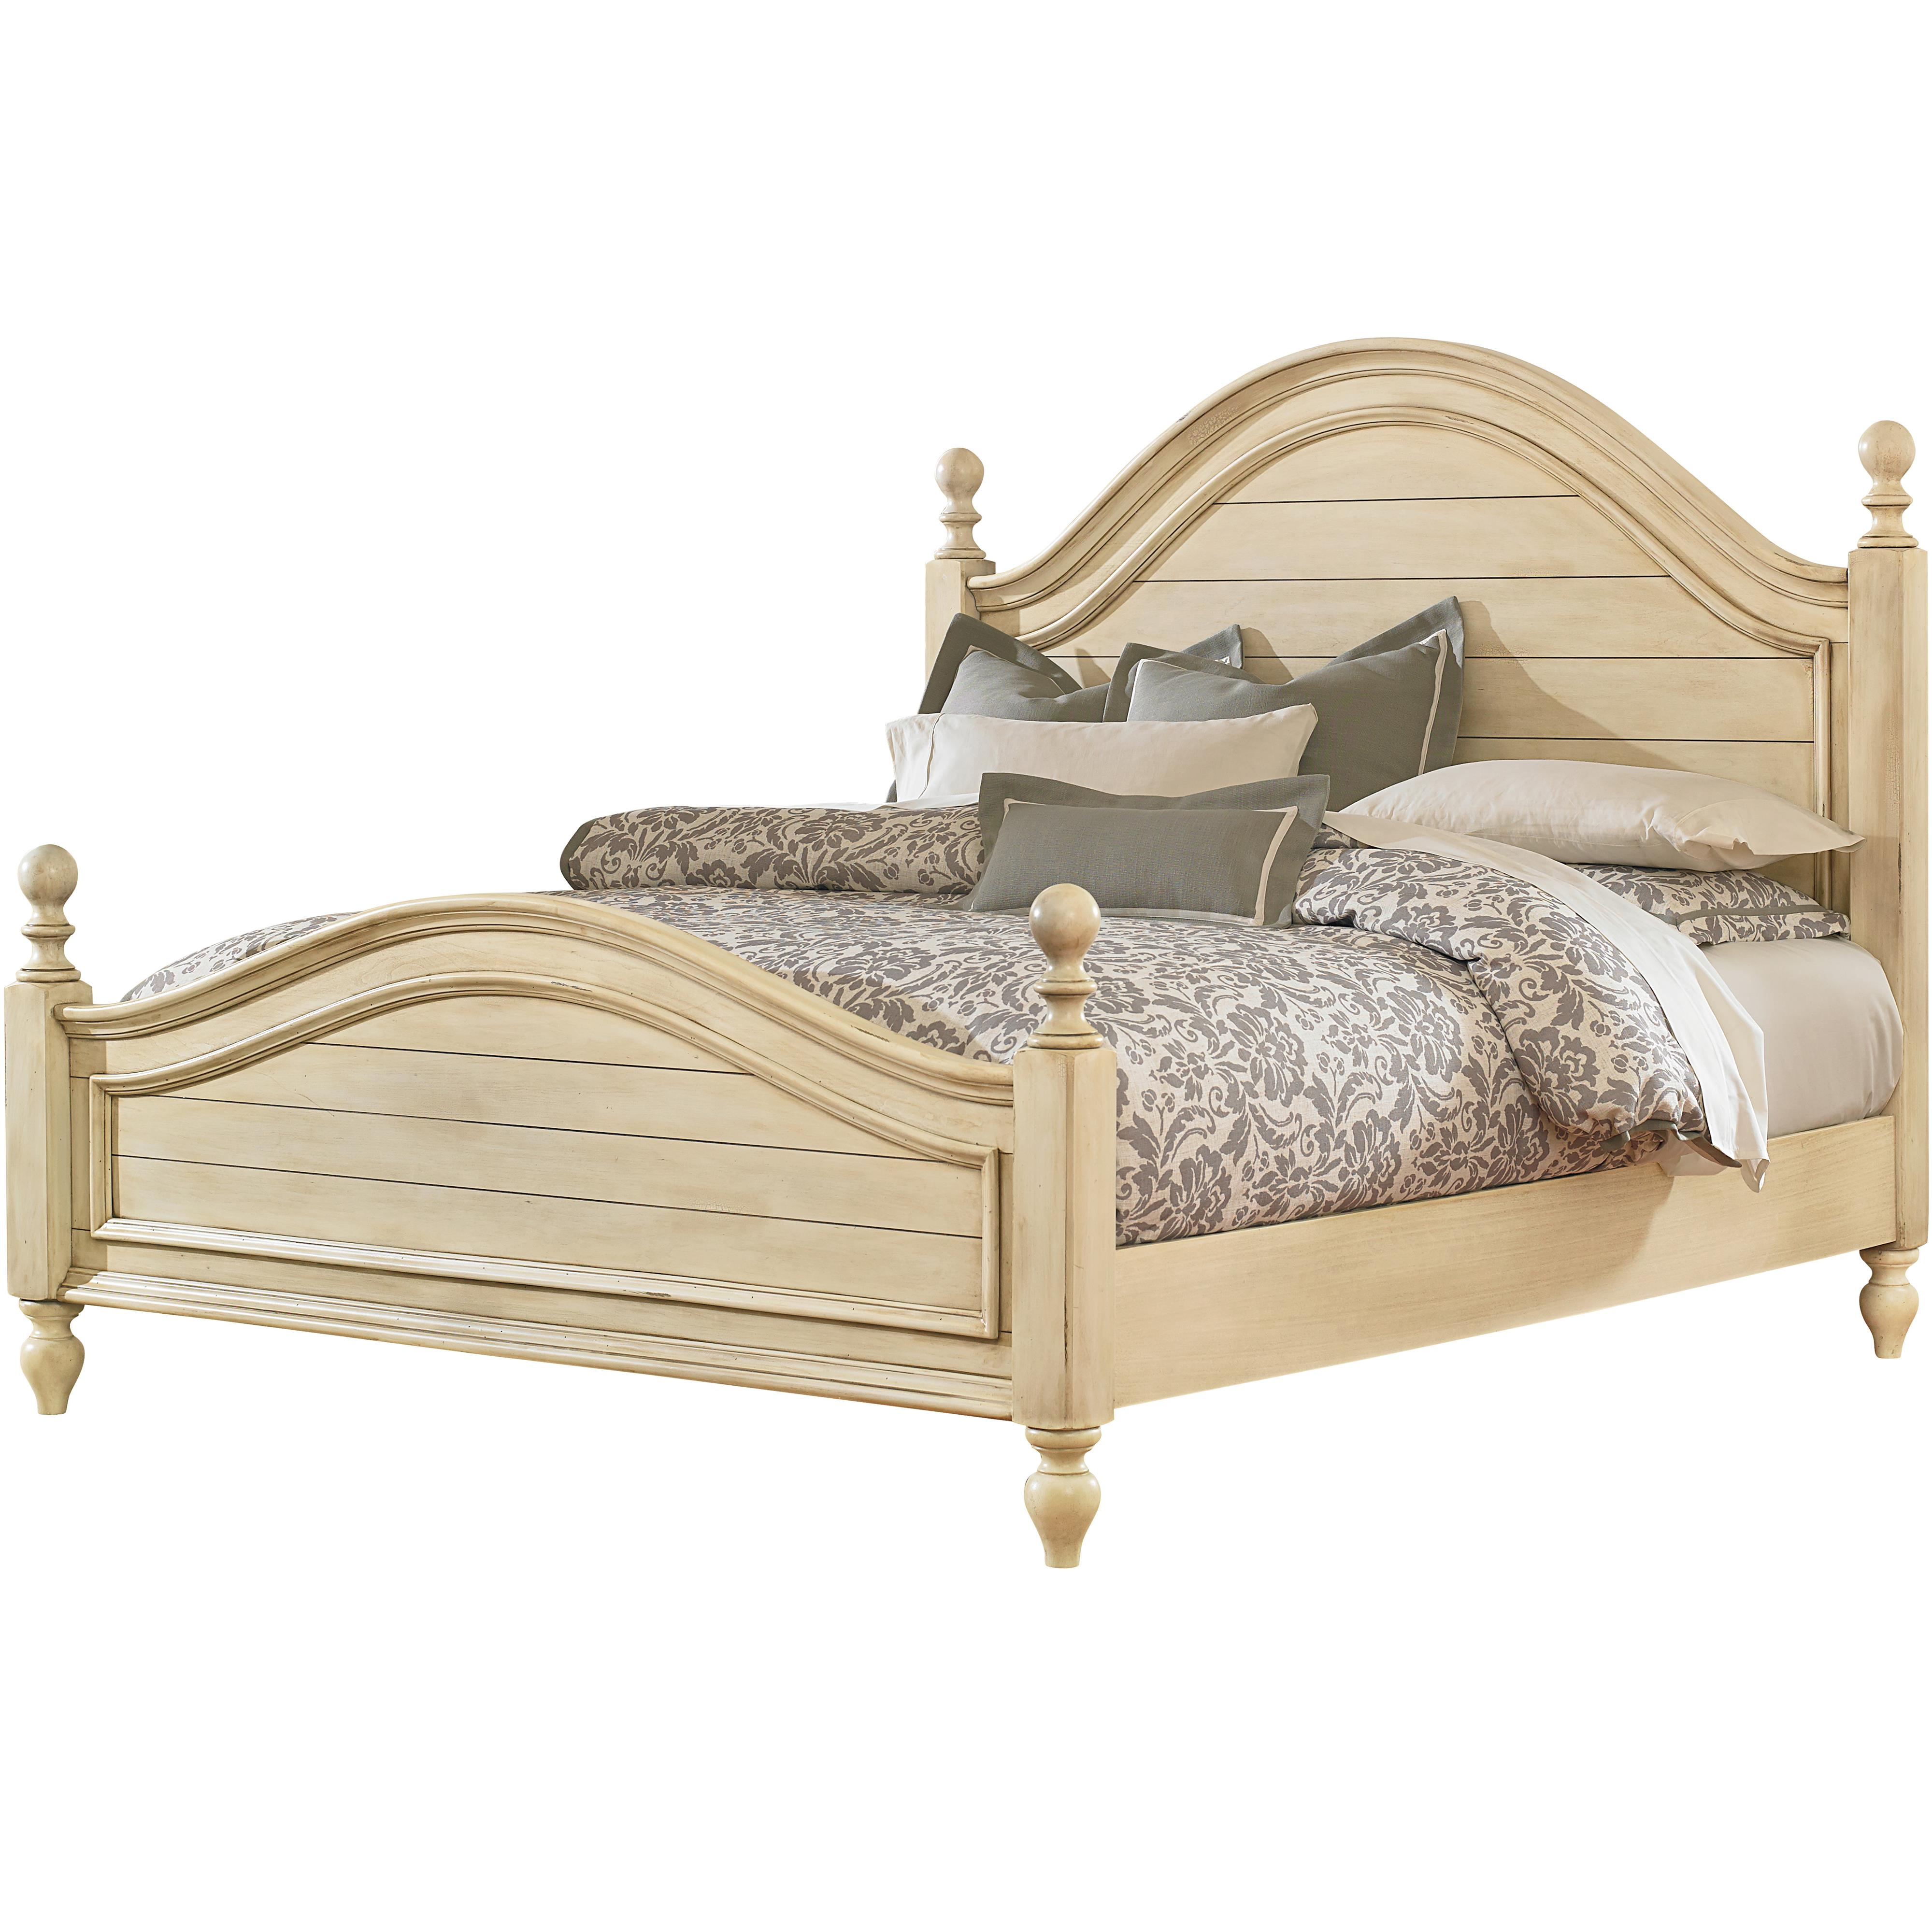 Standard Furniture Chateau King Bed With Arched Headboard